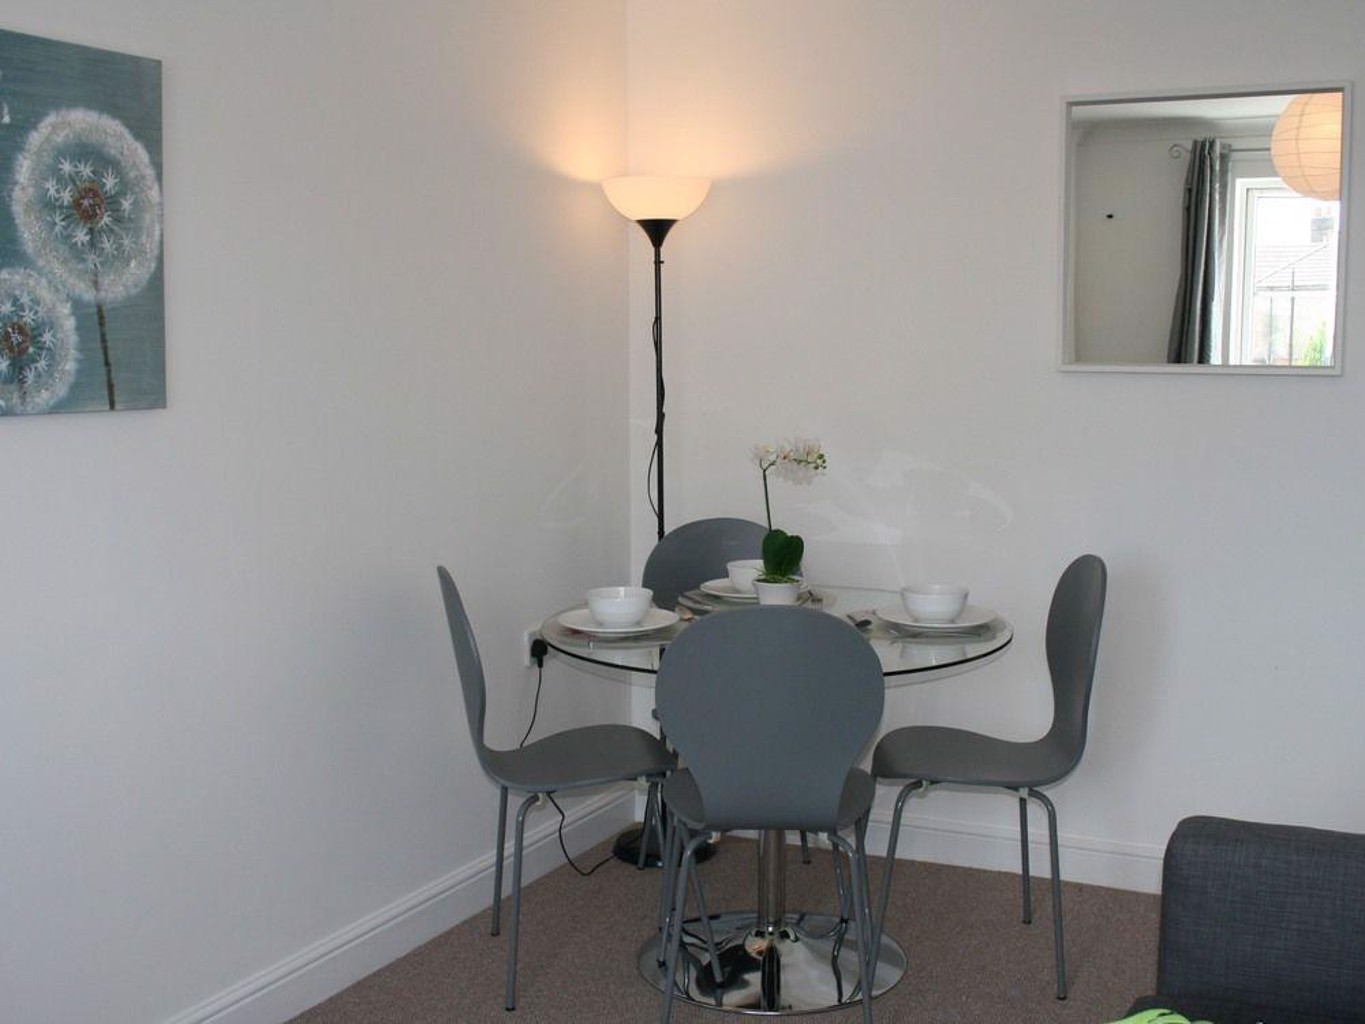 Oceana Accommodation Sycamore court Southampton apartment Walking distance to hospitals parking sleeps 7